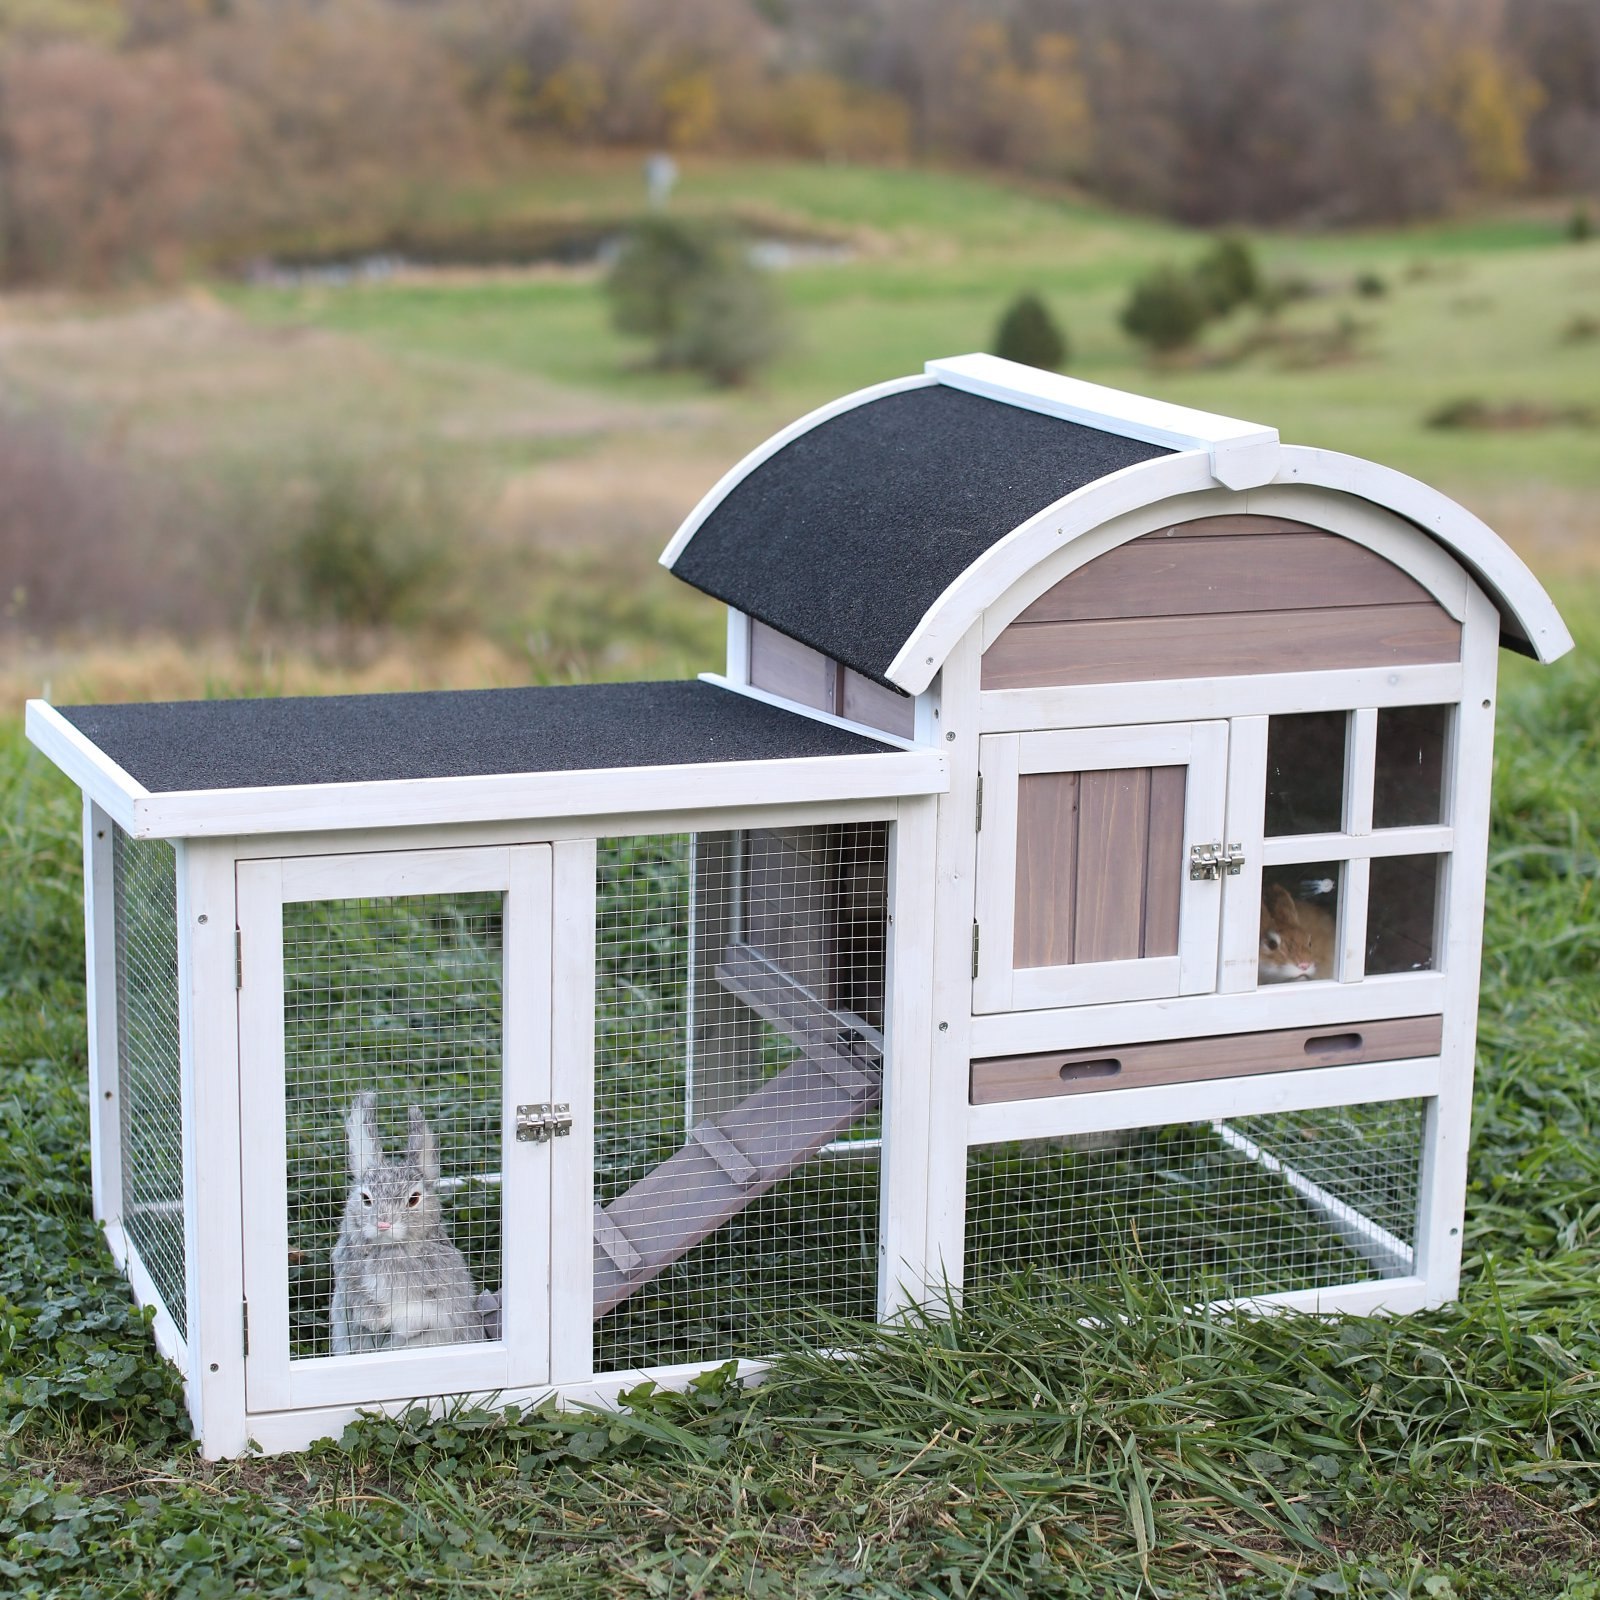 Boomer & George Rabbit Hutch with Rounded Roof and Run by